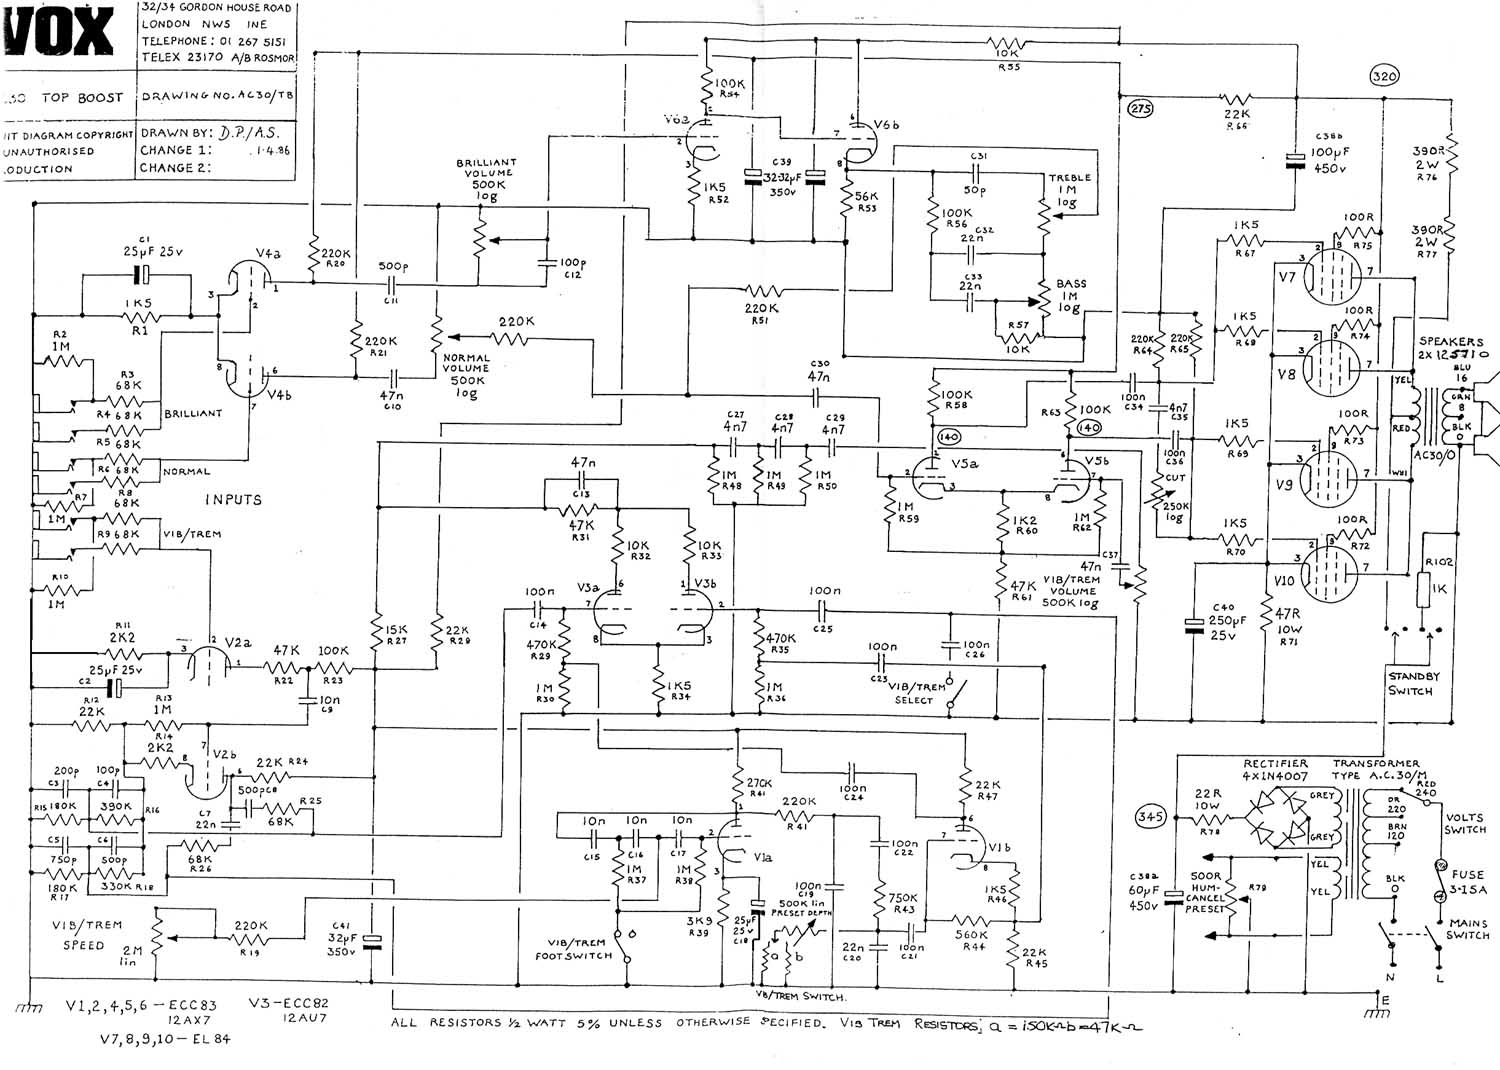 Vox Vintage Circuit Diagrams 1987 Nissan Pathfinder Wiring Ac30 Top Boost 1986 Download Diagram